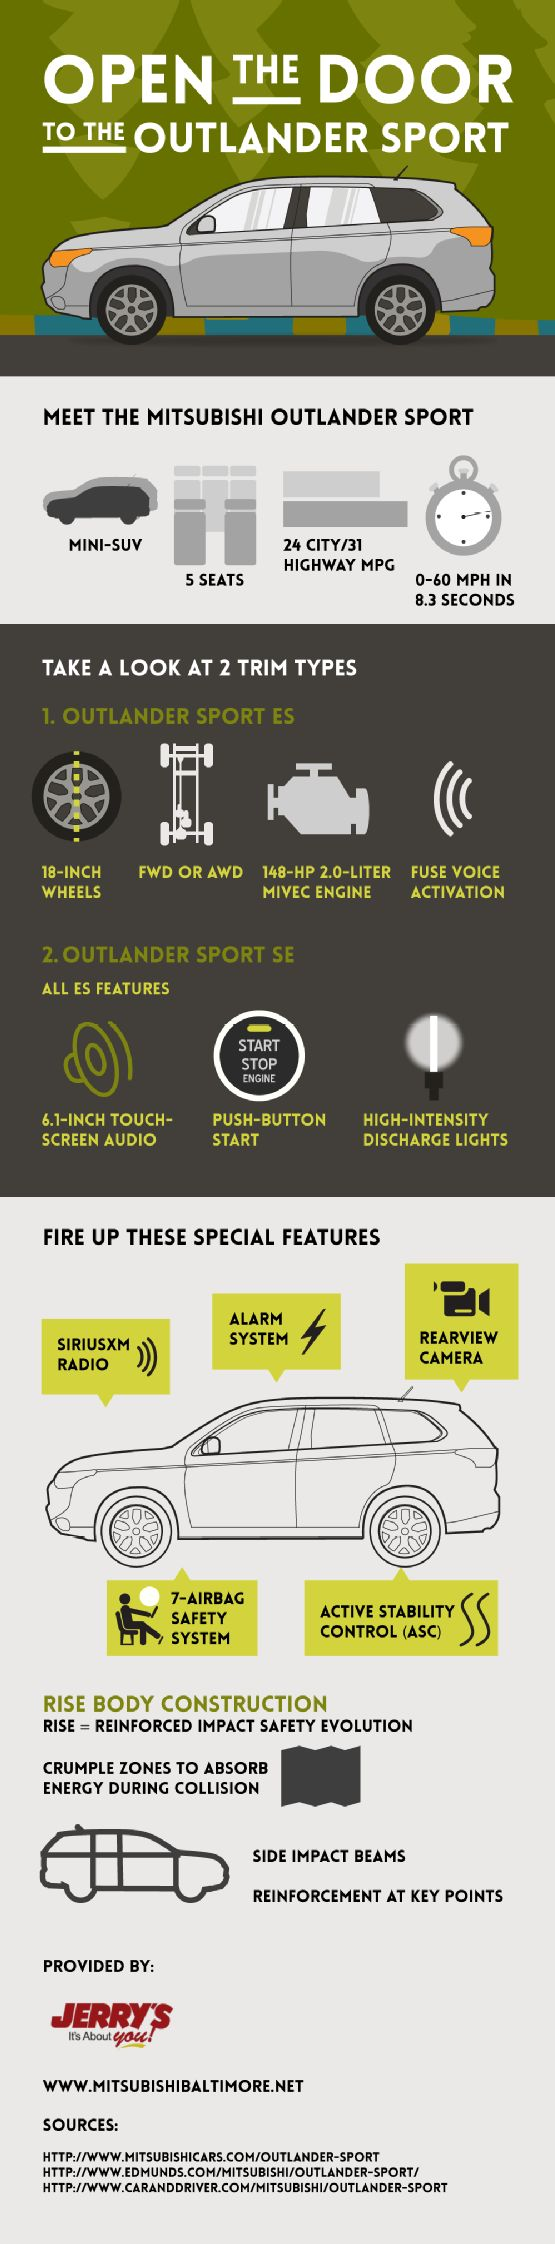 Rearview camera, SiriusXM radio, 7-airbag safety system—these are just some of the amazing features you'll find in the Mitsubishi Outlander Sport! Take a look at this Baltimore new car infographic to see other Mitsubishi Outlander Sport features.